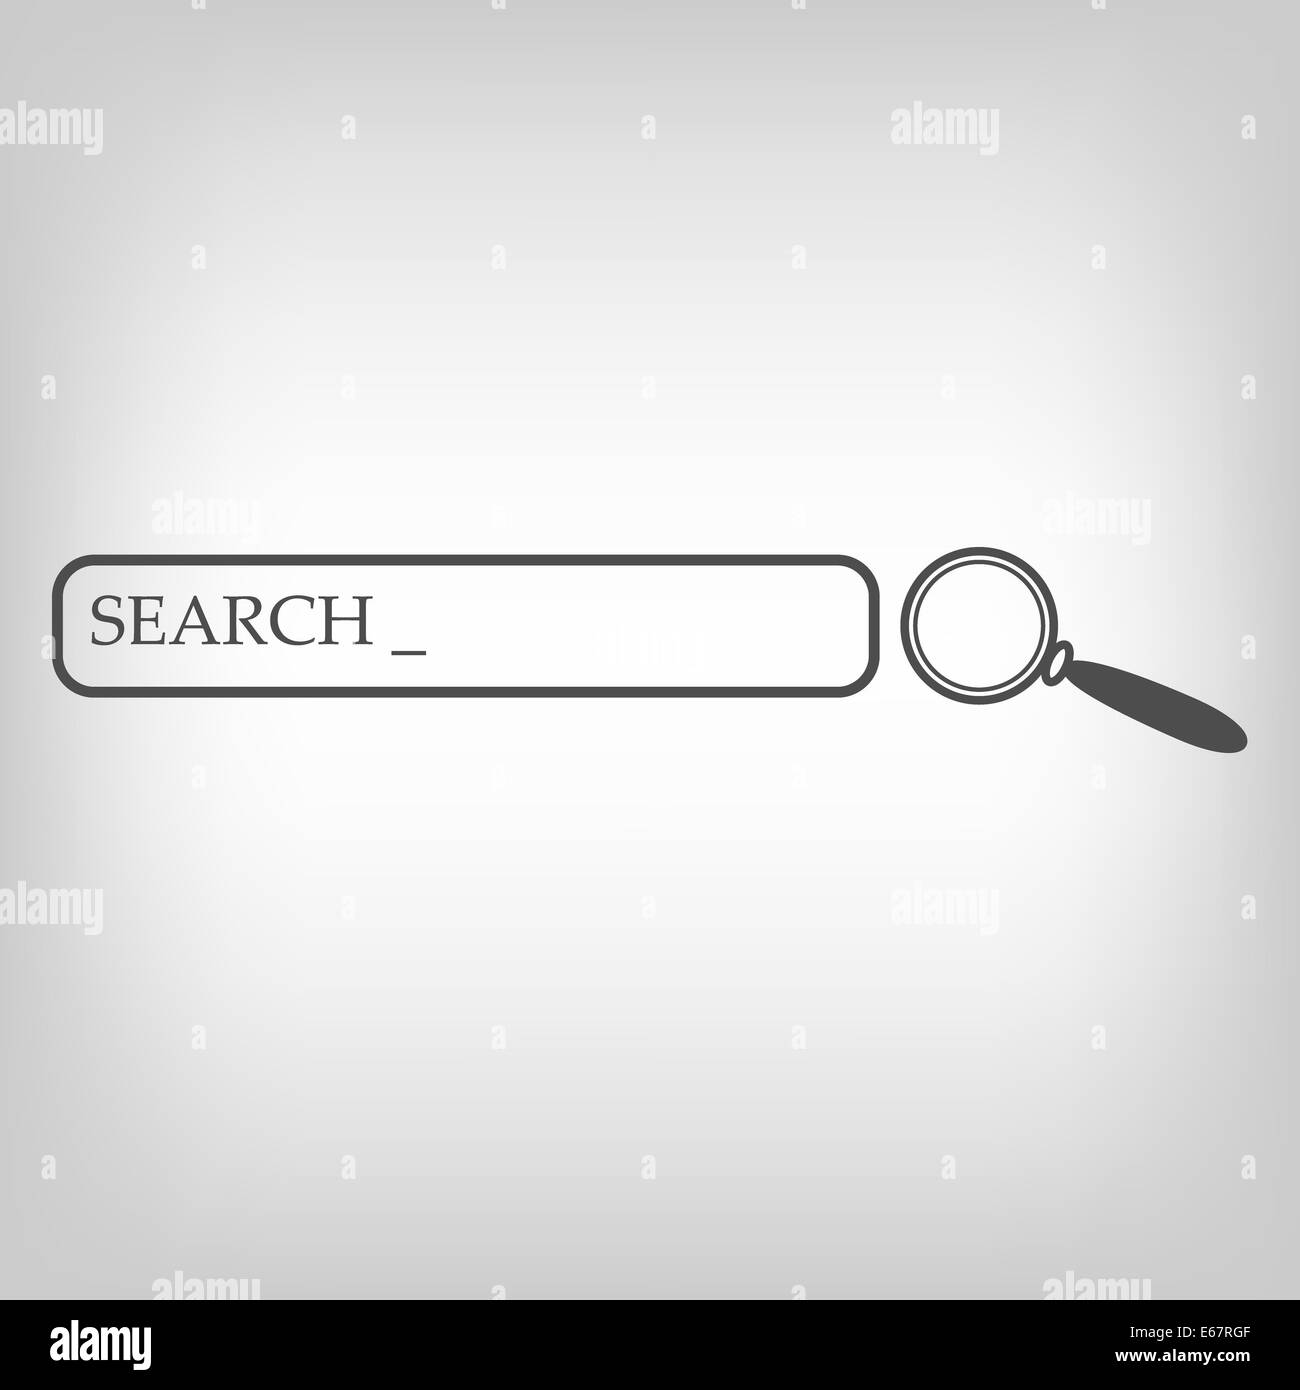 Search bar and magnifying glass - Stock Image